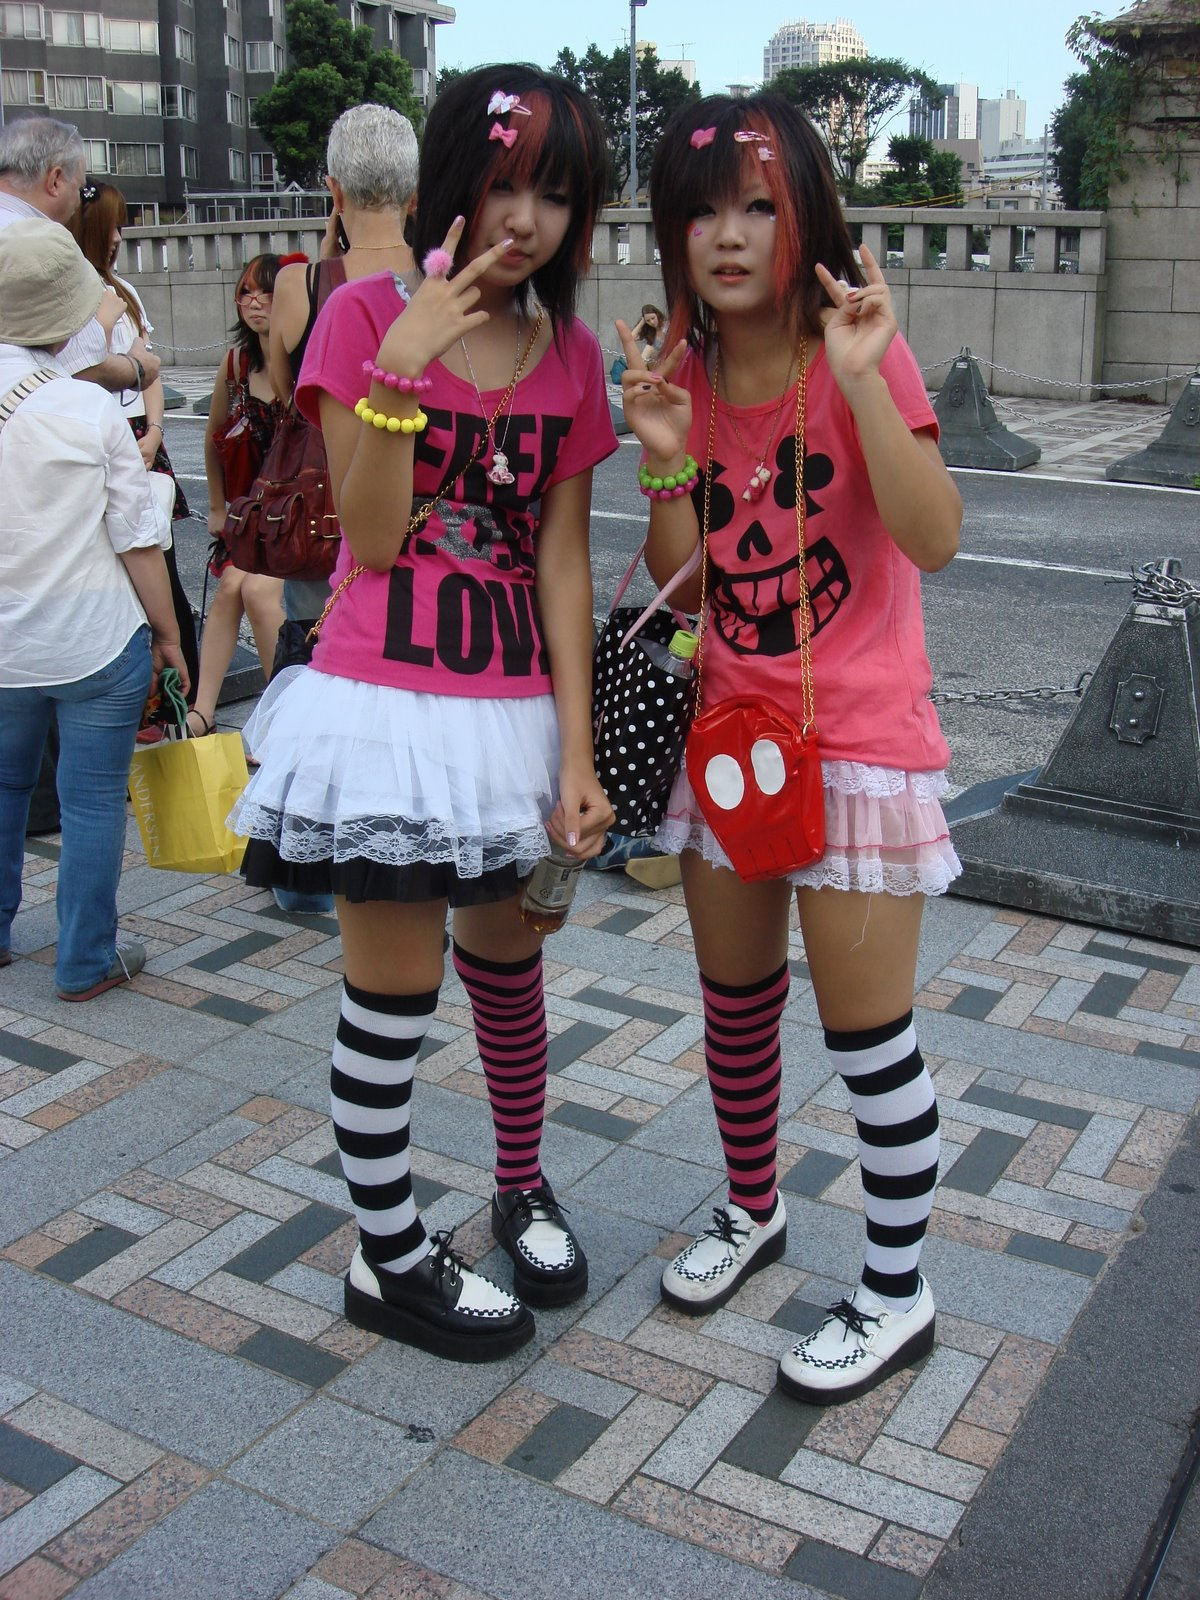 The styles vary anywhere from goth, Visual Kei , cosplay, decora, punk ...